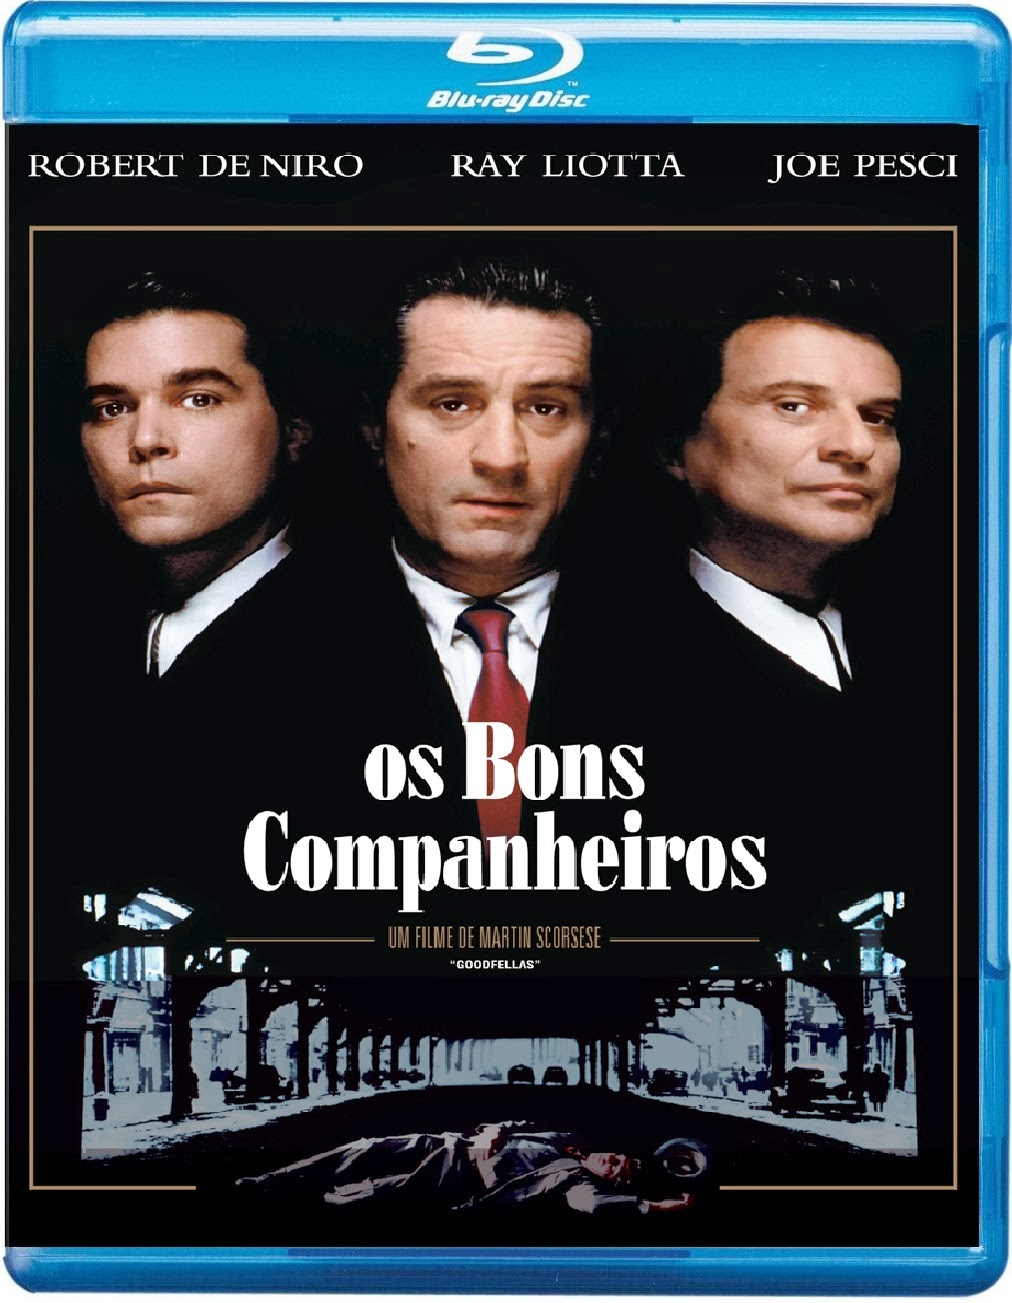 Blu Ray Download Os Bons Companheiros (1990) BDRIP BLURAY 720P TORRENT DUBLADO